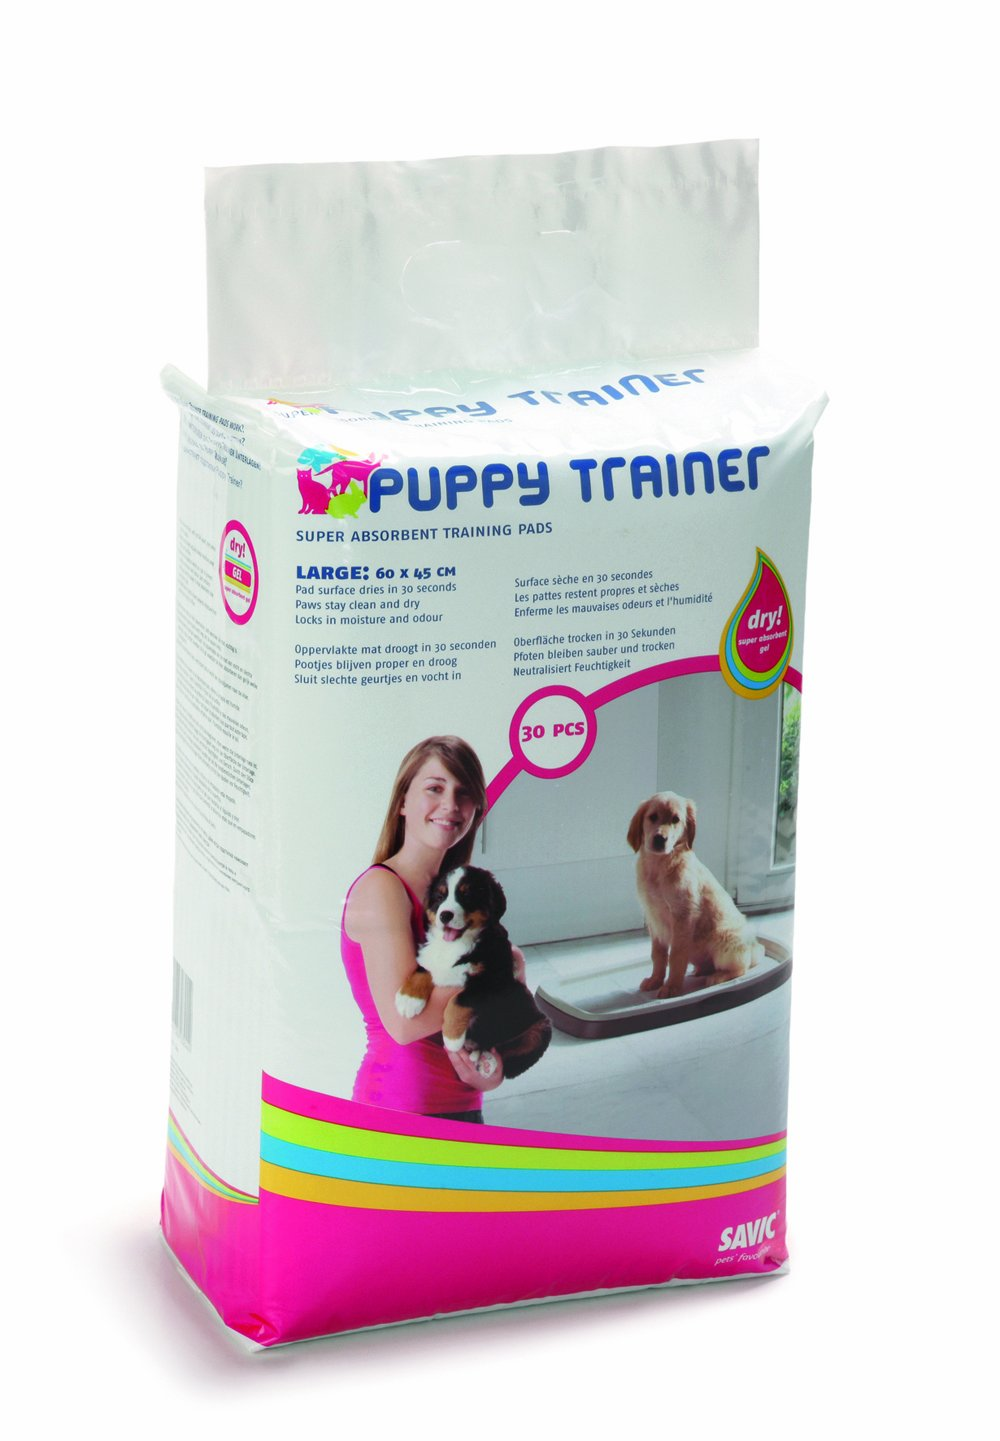 SAVIC EMPAPADOR TRAINER LARGUE 30 uds.: Amazon.es: Productos para mascotas